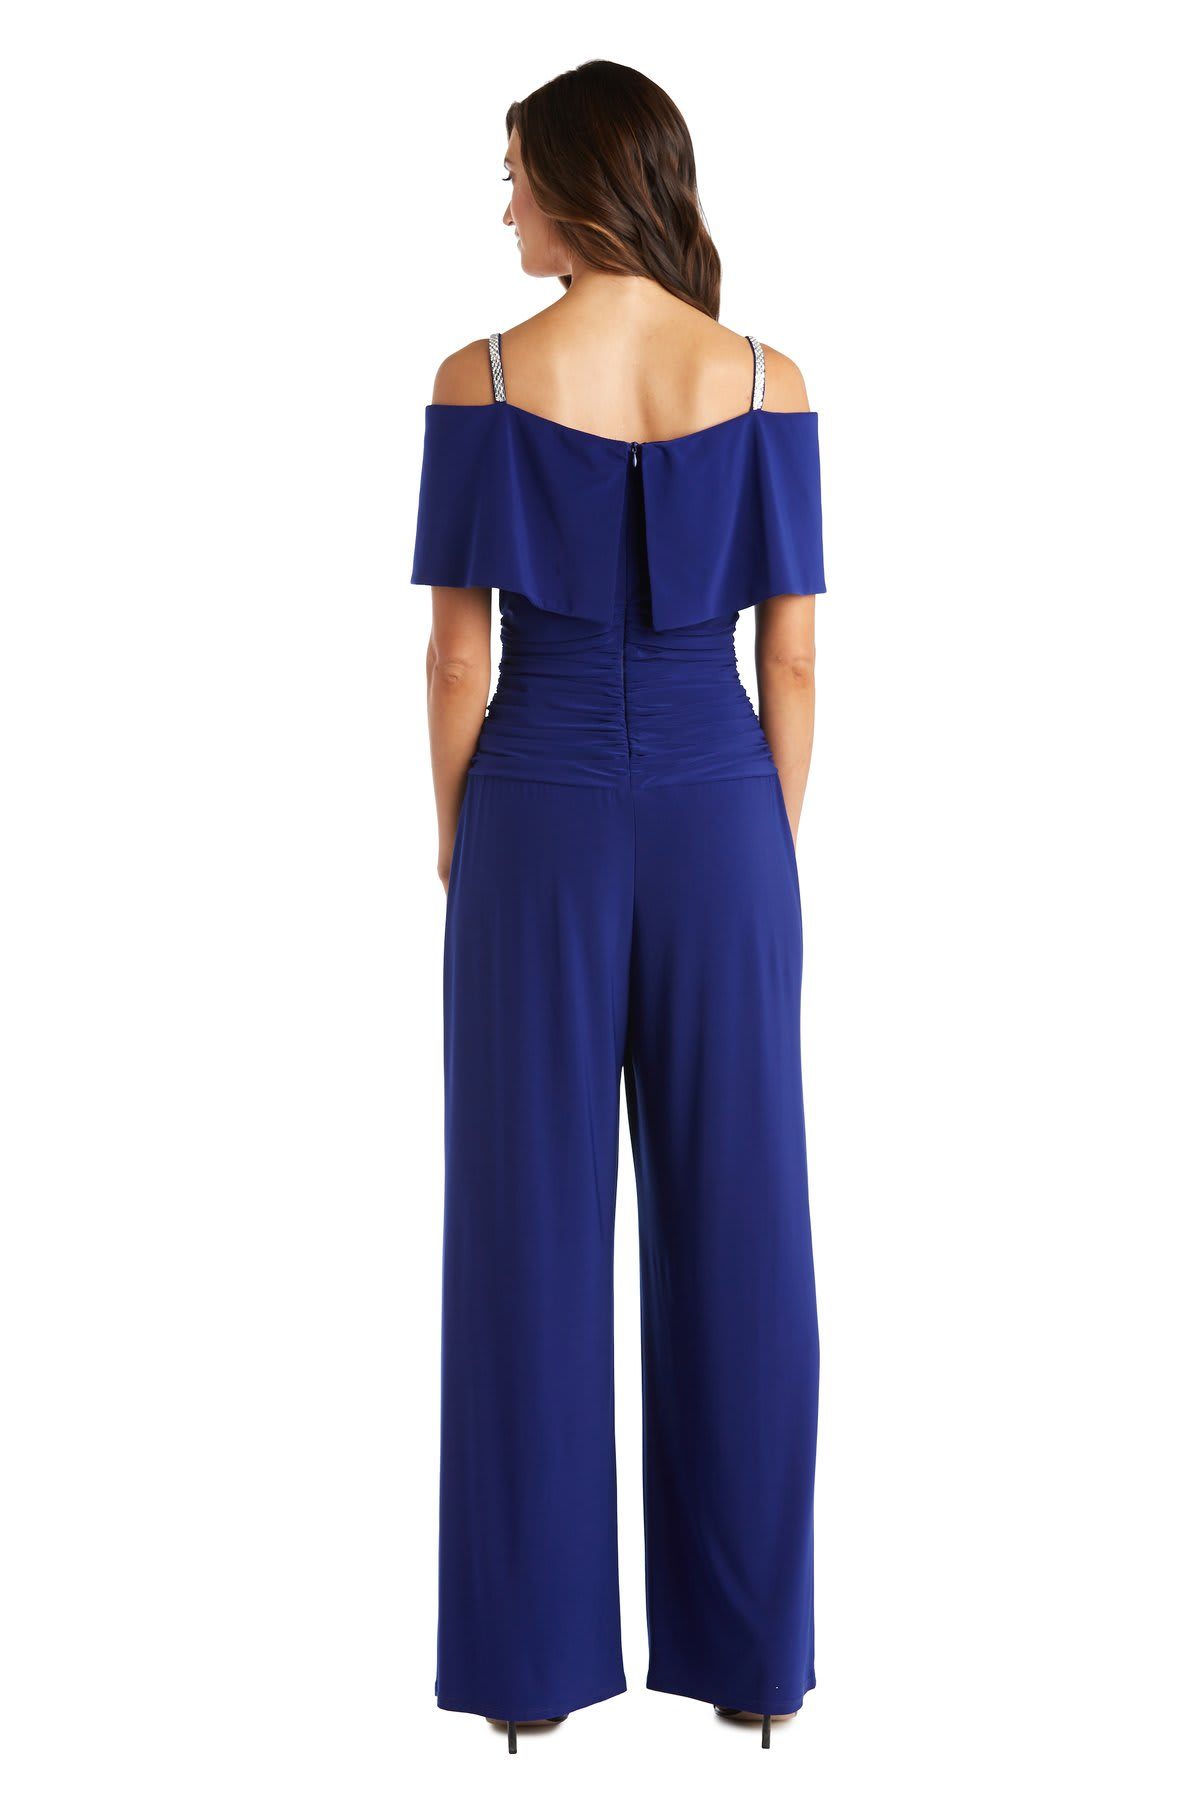 One Piece Shoulder Ruched Bodice Jumpsuit - Electric Blue - Back